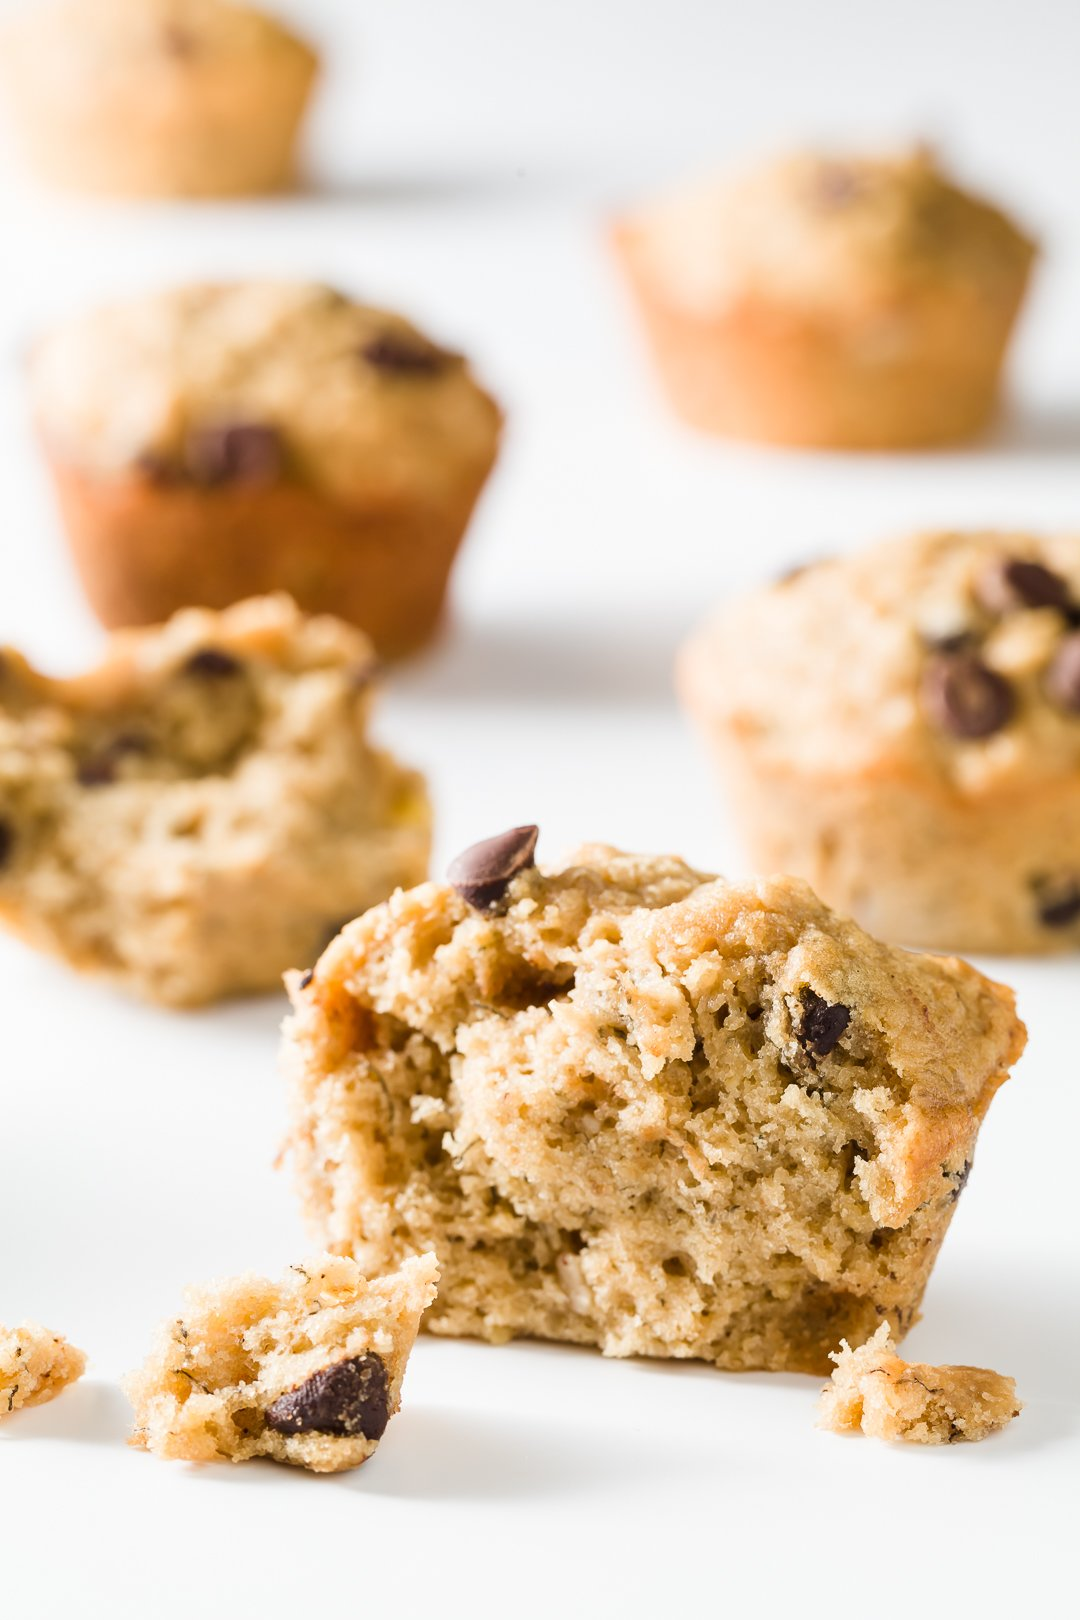 Banana oatmeal chocolate chip muffin broken open